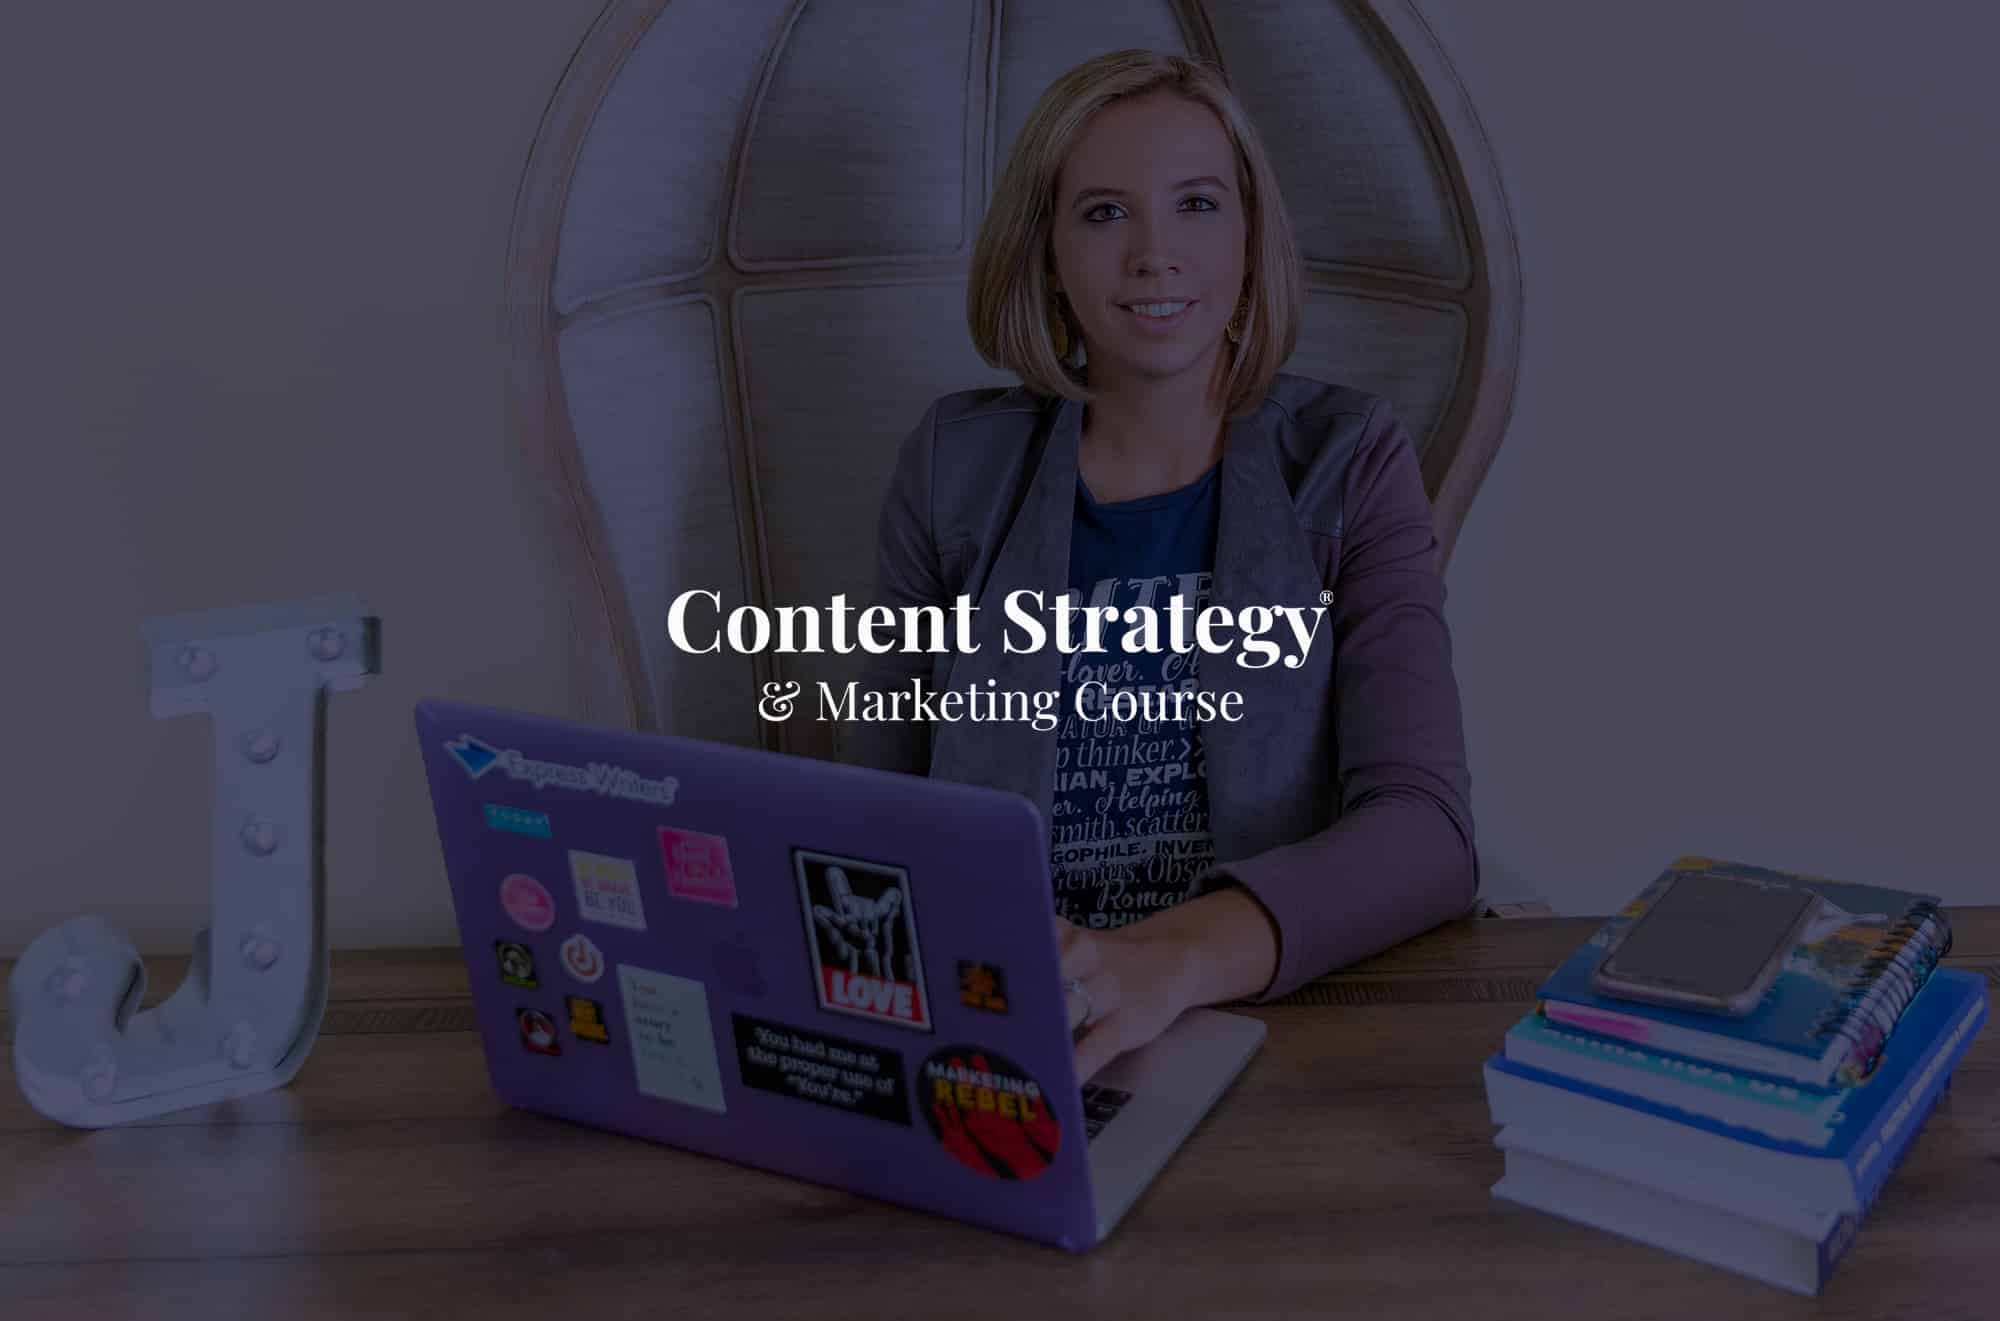 content strategy and marketing course